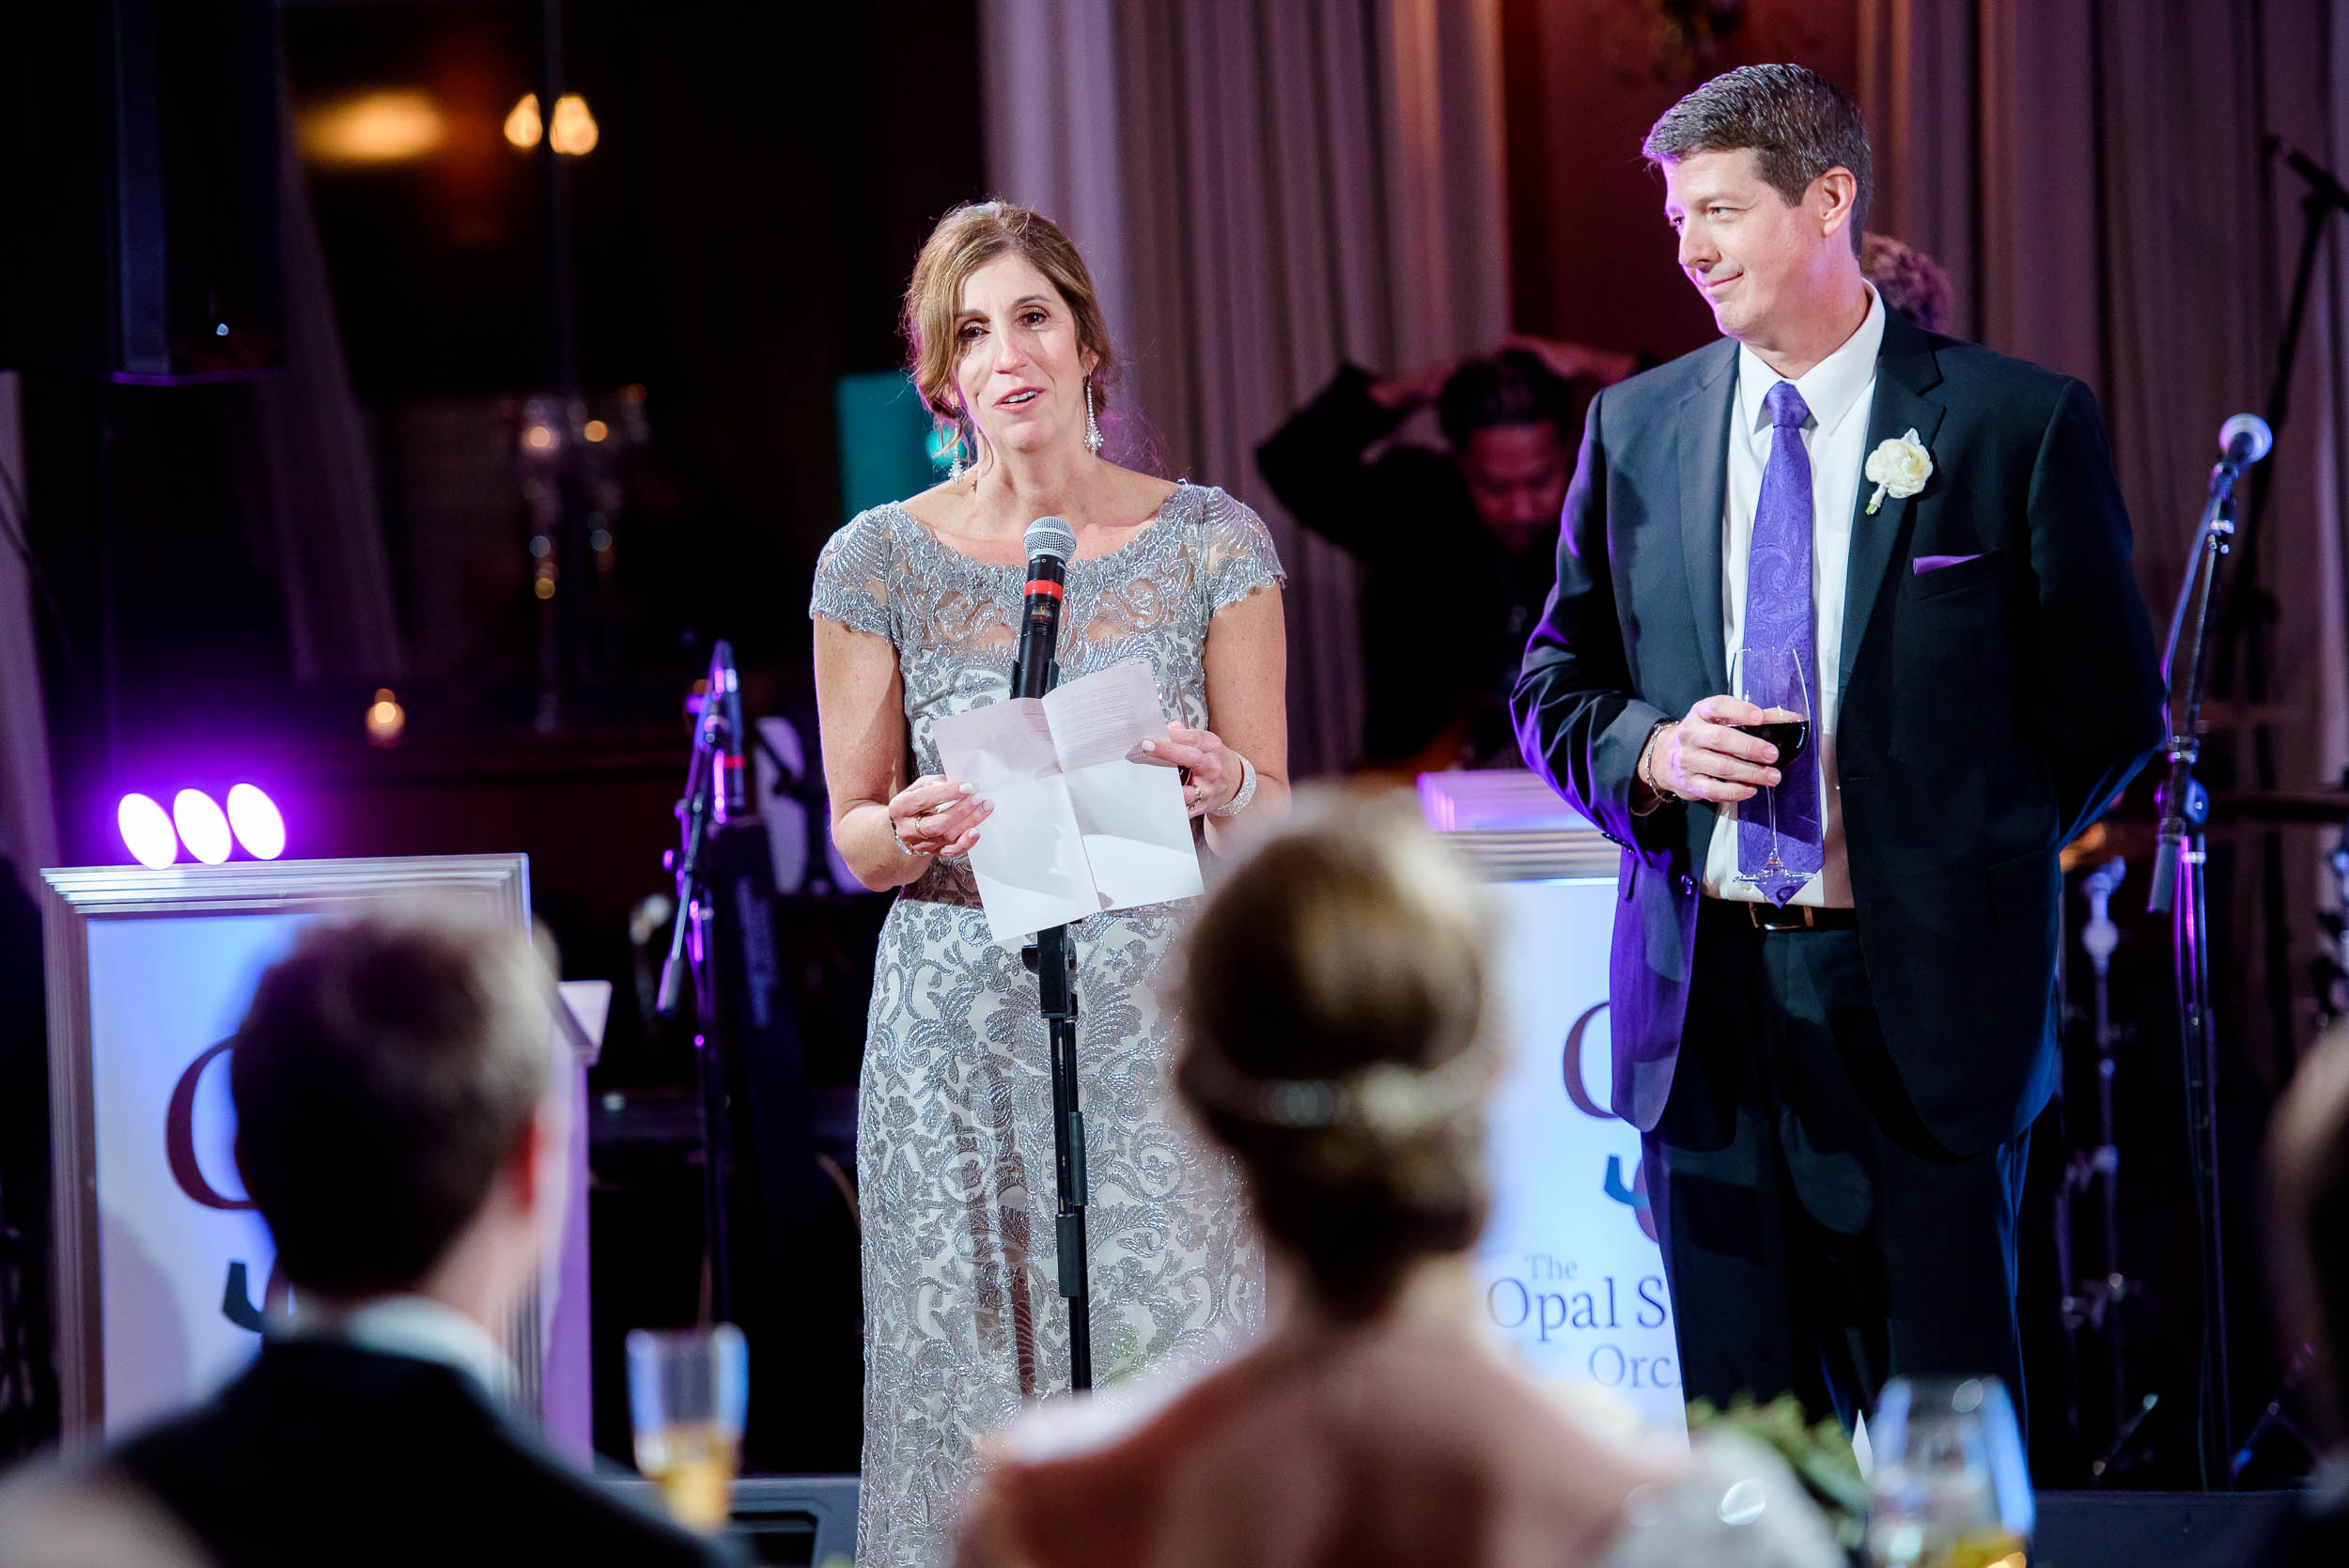 Parent toasts during a Newberry Library Chicago wedding.